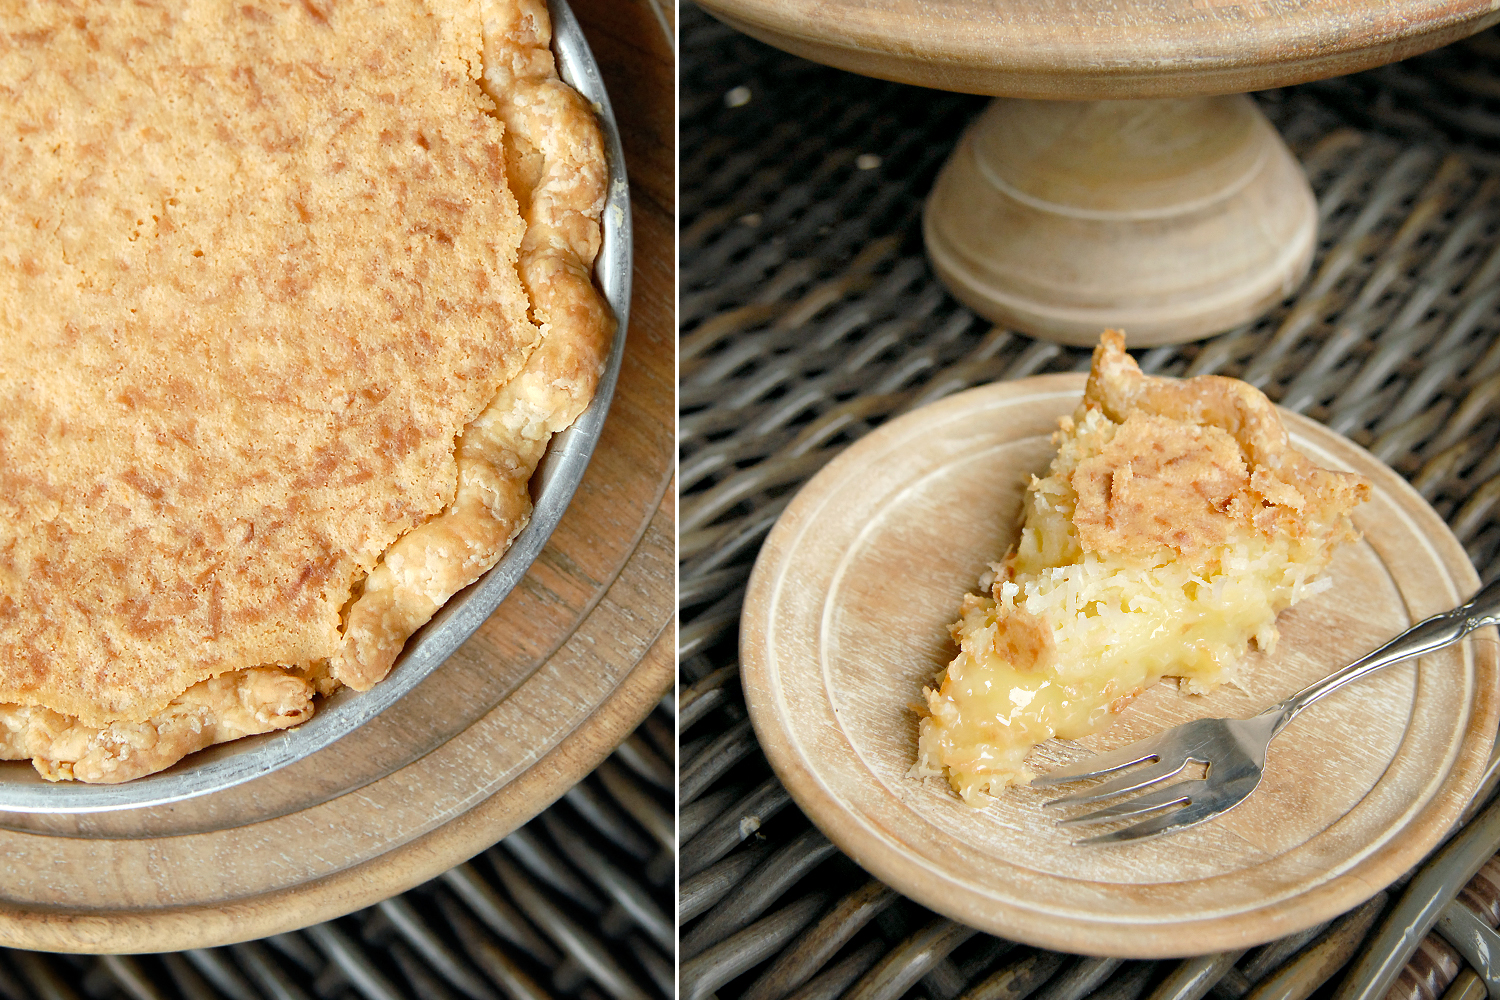 Coconut Custard Pie   5.25 per slice / 36 whole  This pie dates back to 1893! Ours is very buttery and laden with coconut that rises to the top as it bakes! Immensely satisfying.